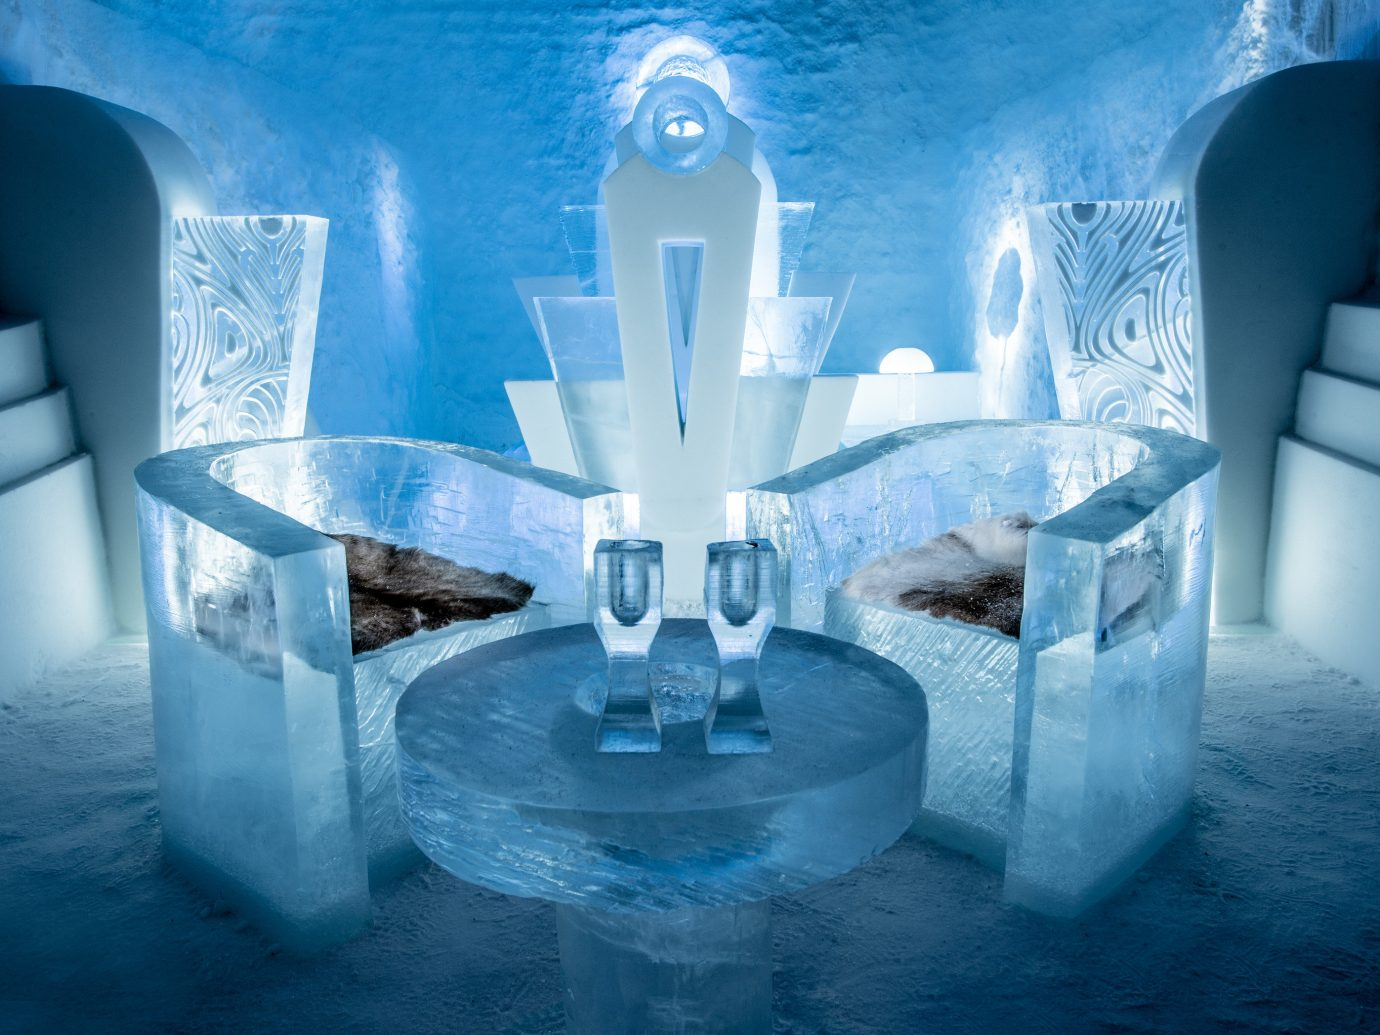 Boutique Hotels Sweden Winter blue water ice hotel ice arctic computer wallpaper world symmetry